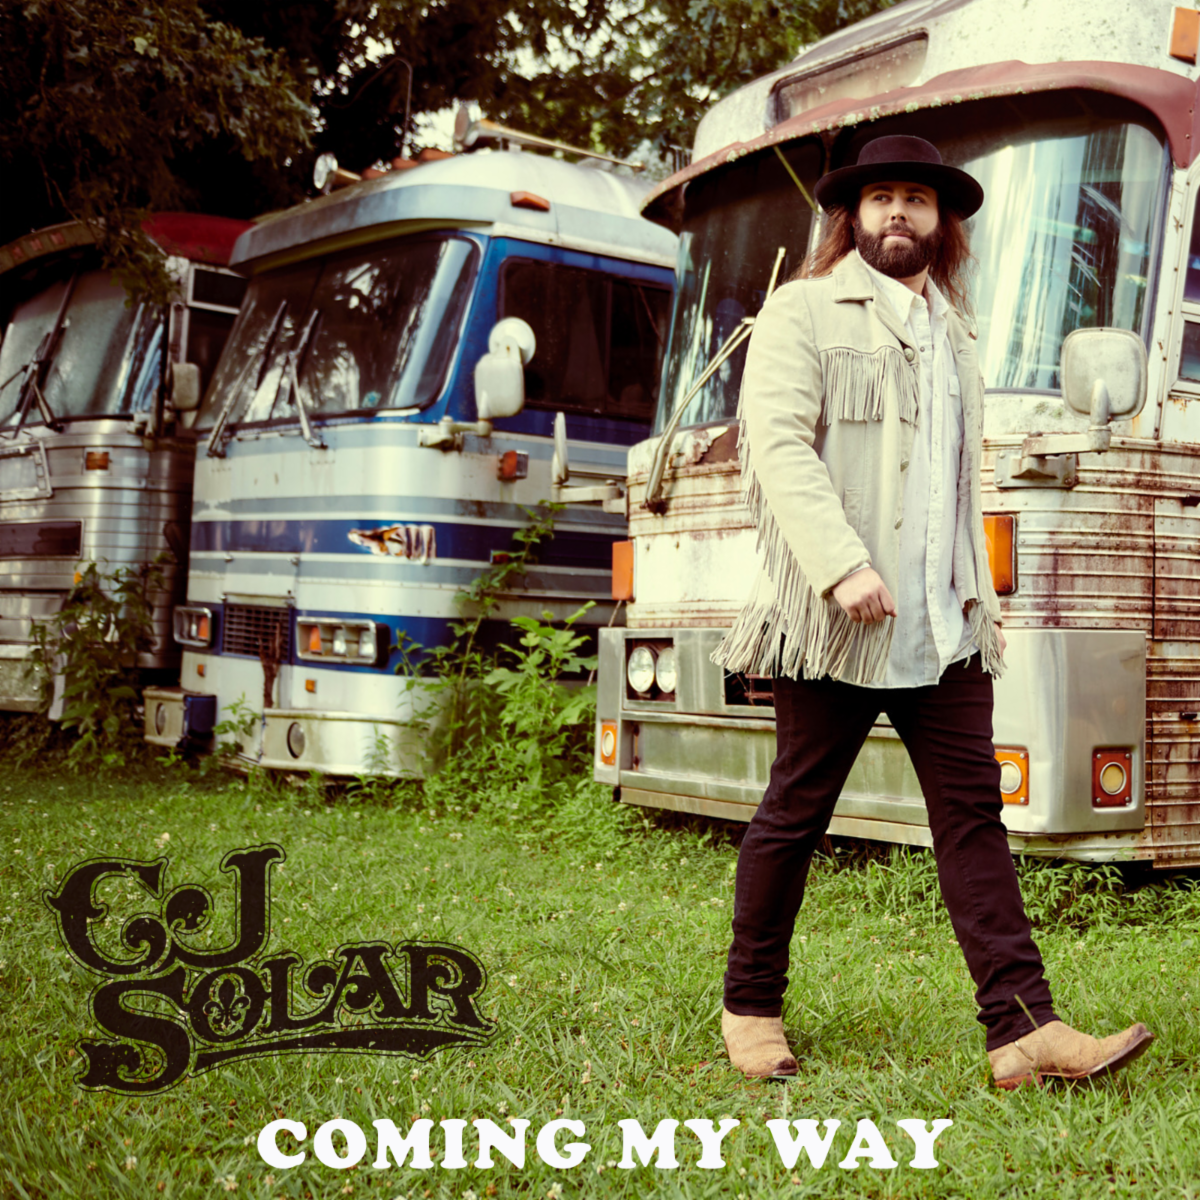 CJ Solar, Solar, Coming My Way, Coming, Sepmtember